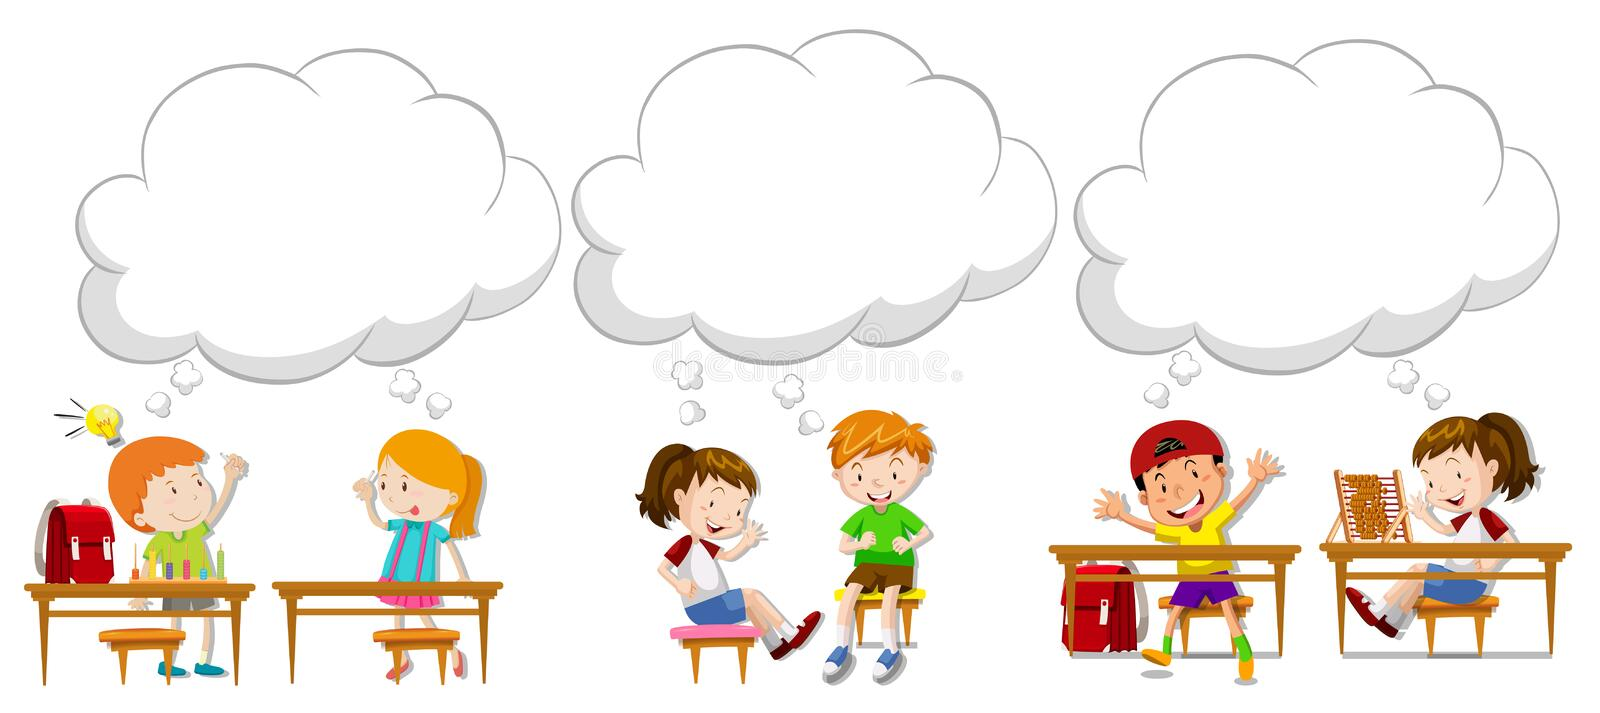 Children with blank speech bubbles vector illustration